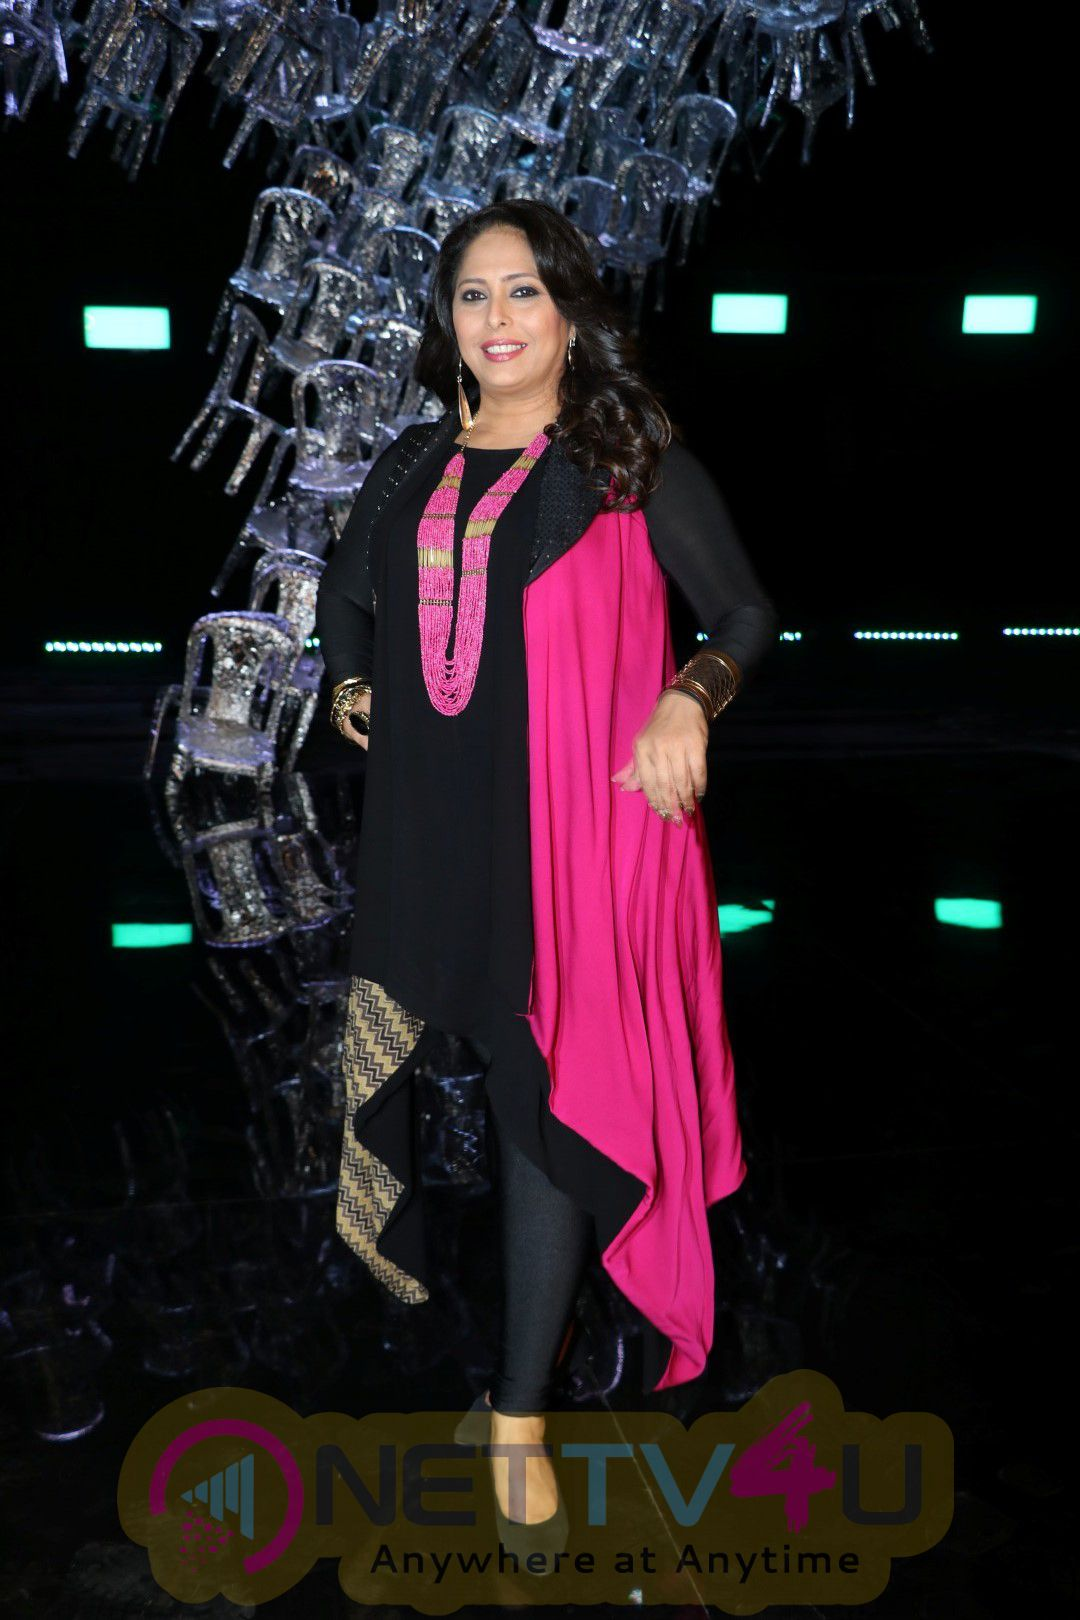 Photoshoot Of Sony TV Super Dancer With Shilpa Shetty, Anurag Basu & Geeta Kapoor At Filmistan Studio Photos